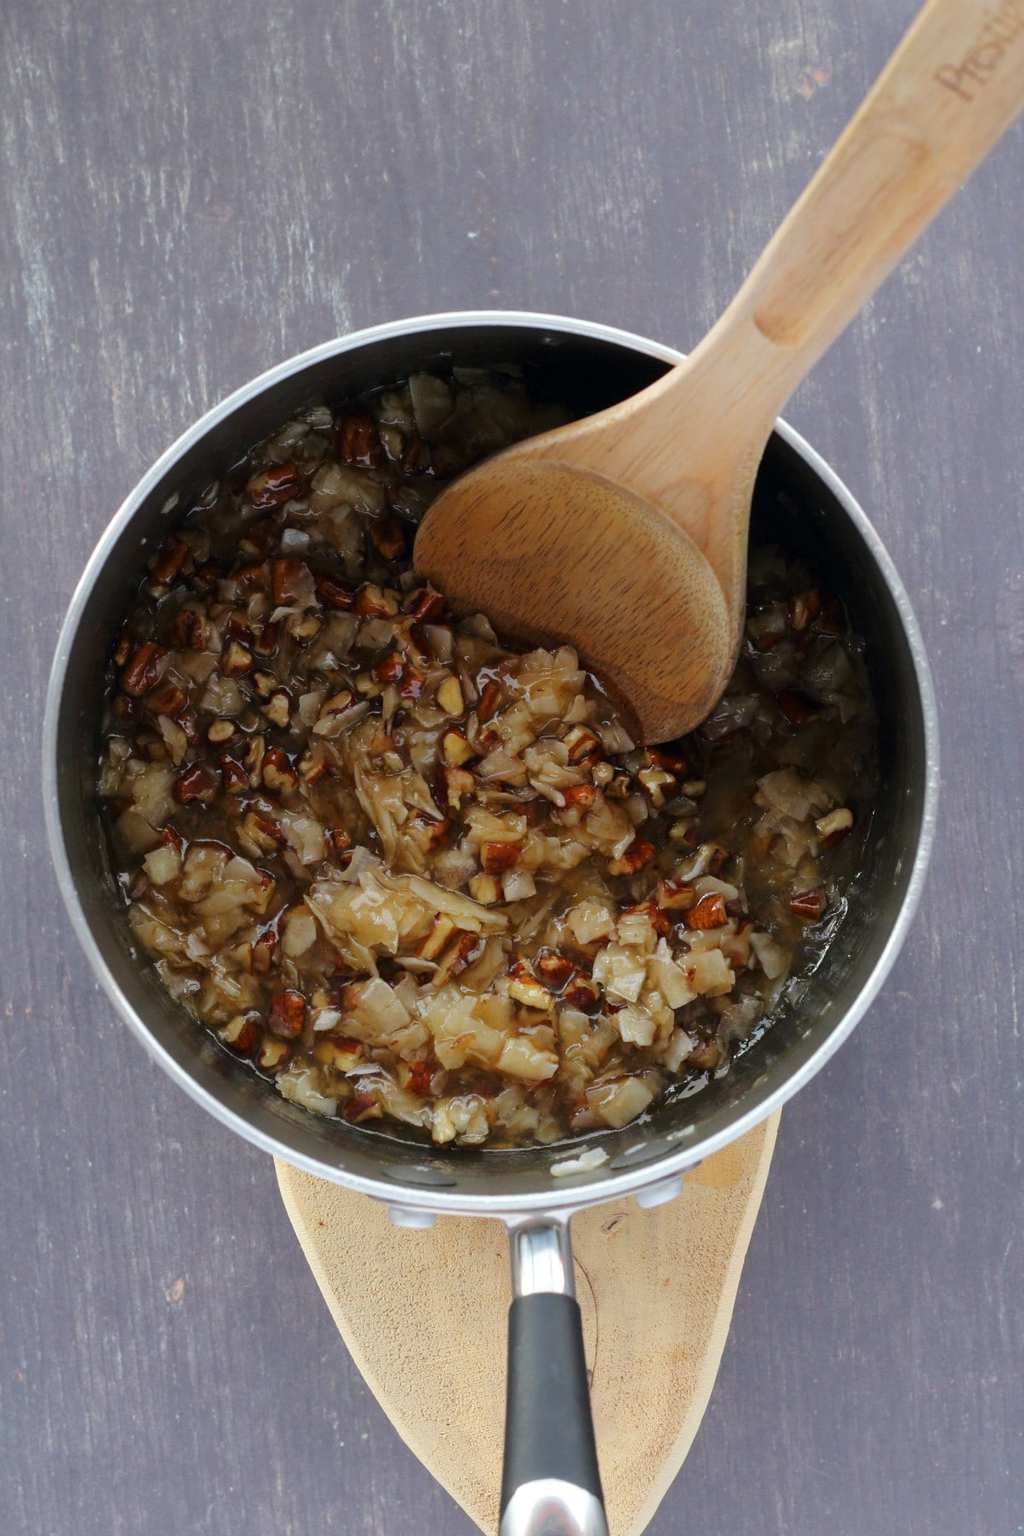 Coconut pecan filling for a vegan German chocolate cake in a saucepan with a wooden spoon.